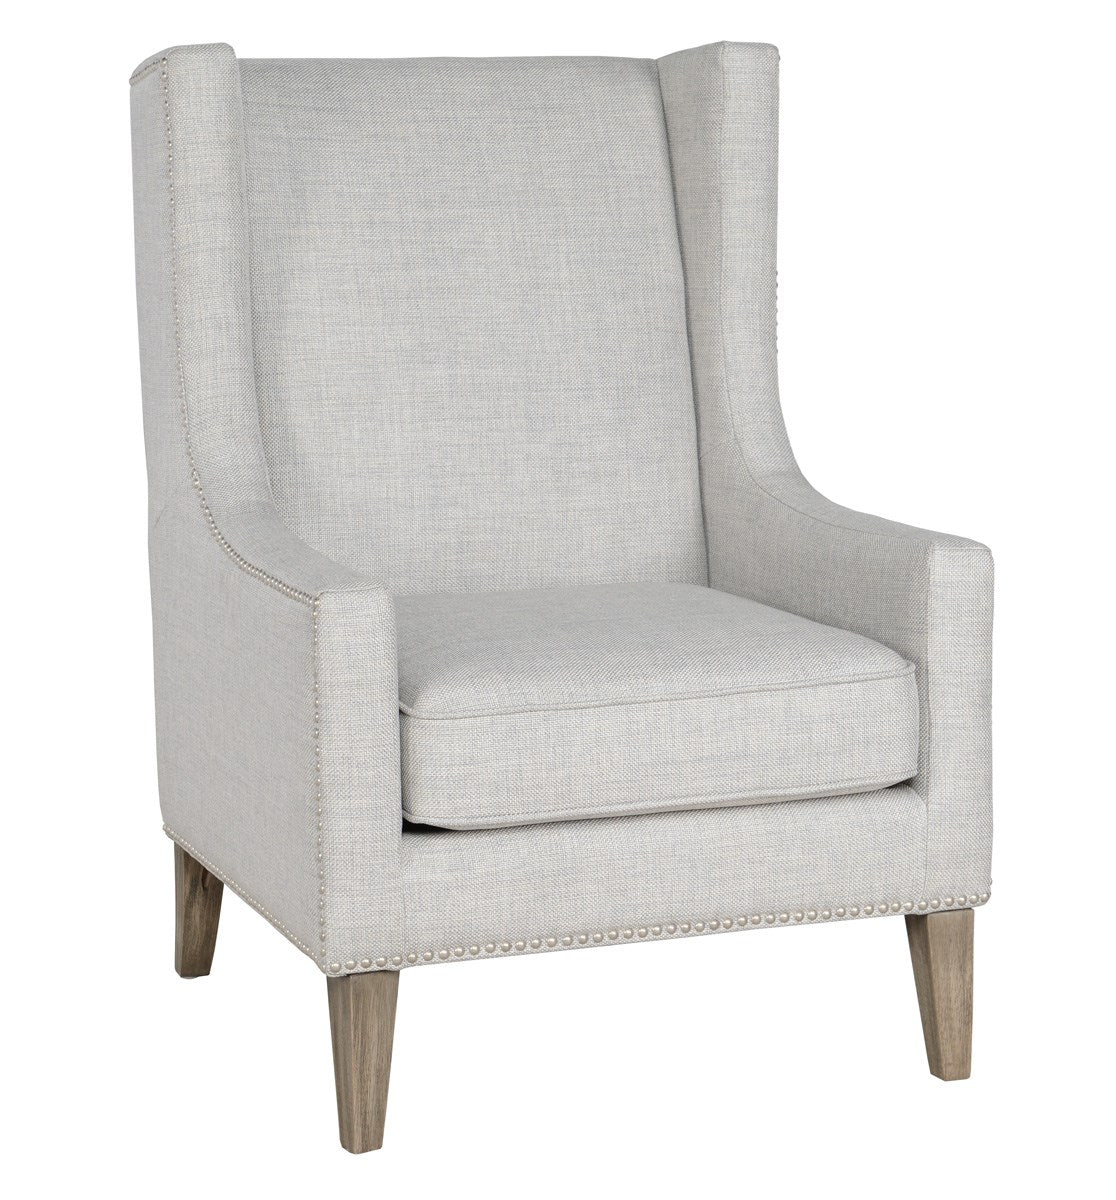 Erie Club Chair in Gray